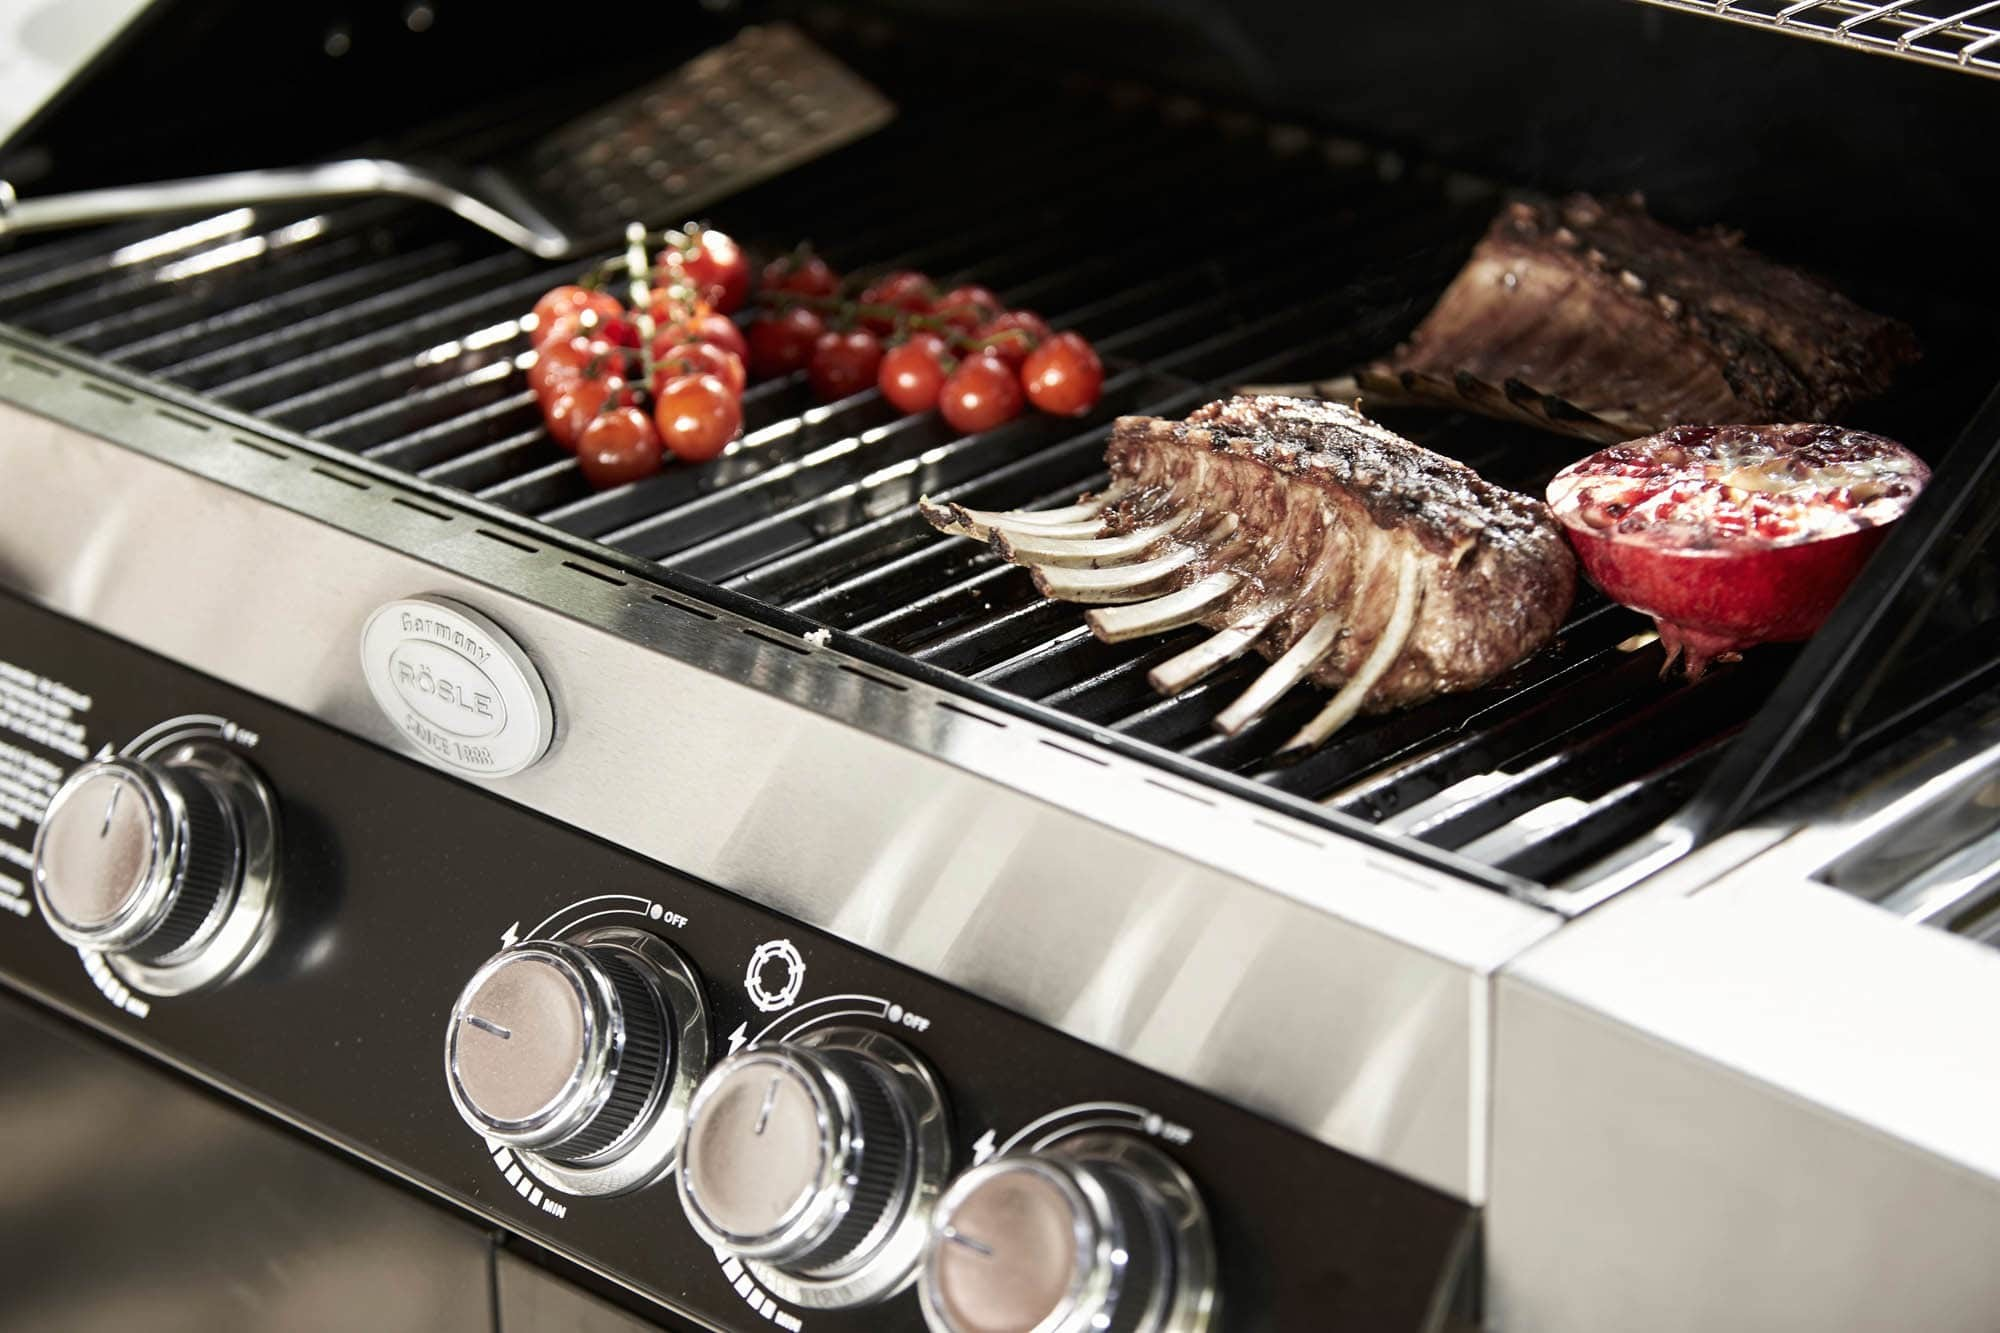 Landmann Gasgrill Ostermann : Bomann gasgrill gasgrill made in germany beefer one pro with